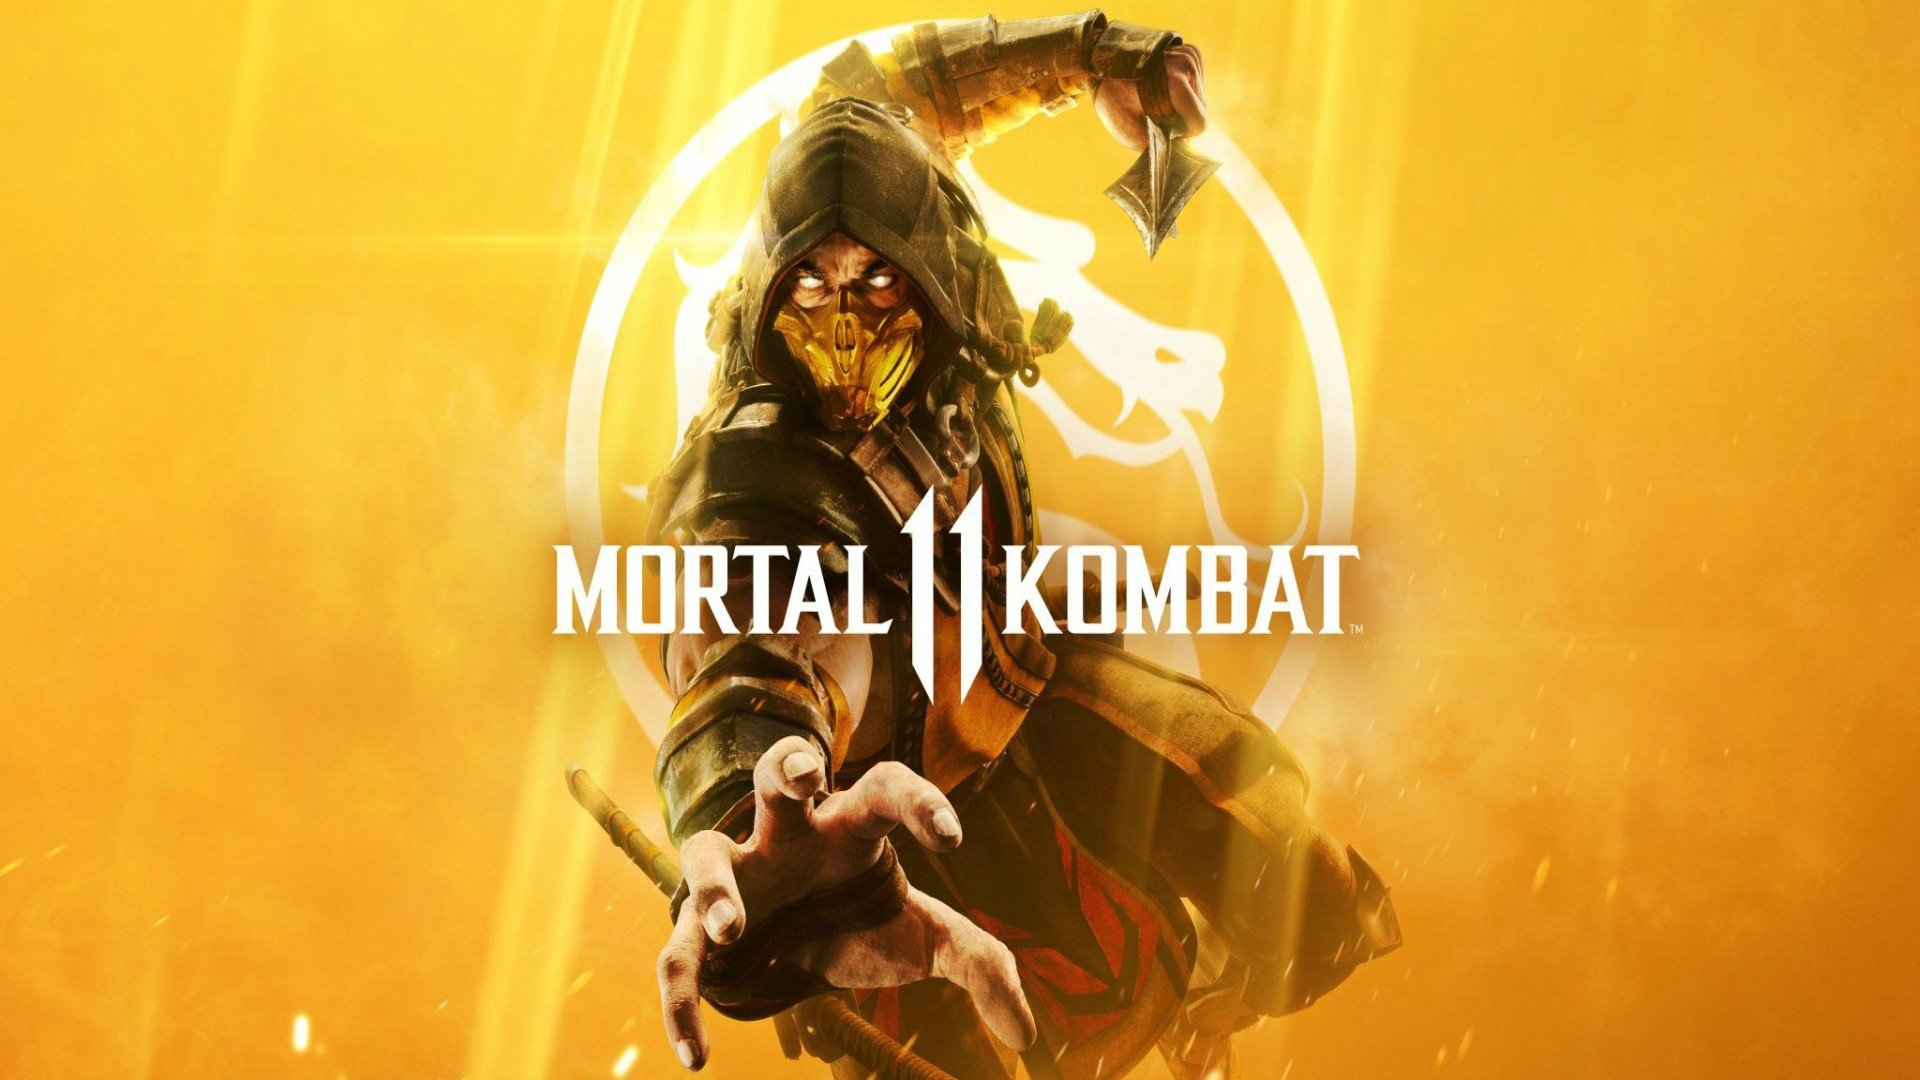 36 Mortal Kombat 11 HD Wallpapers